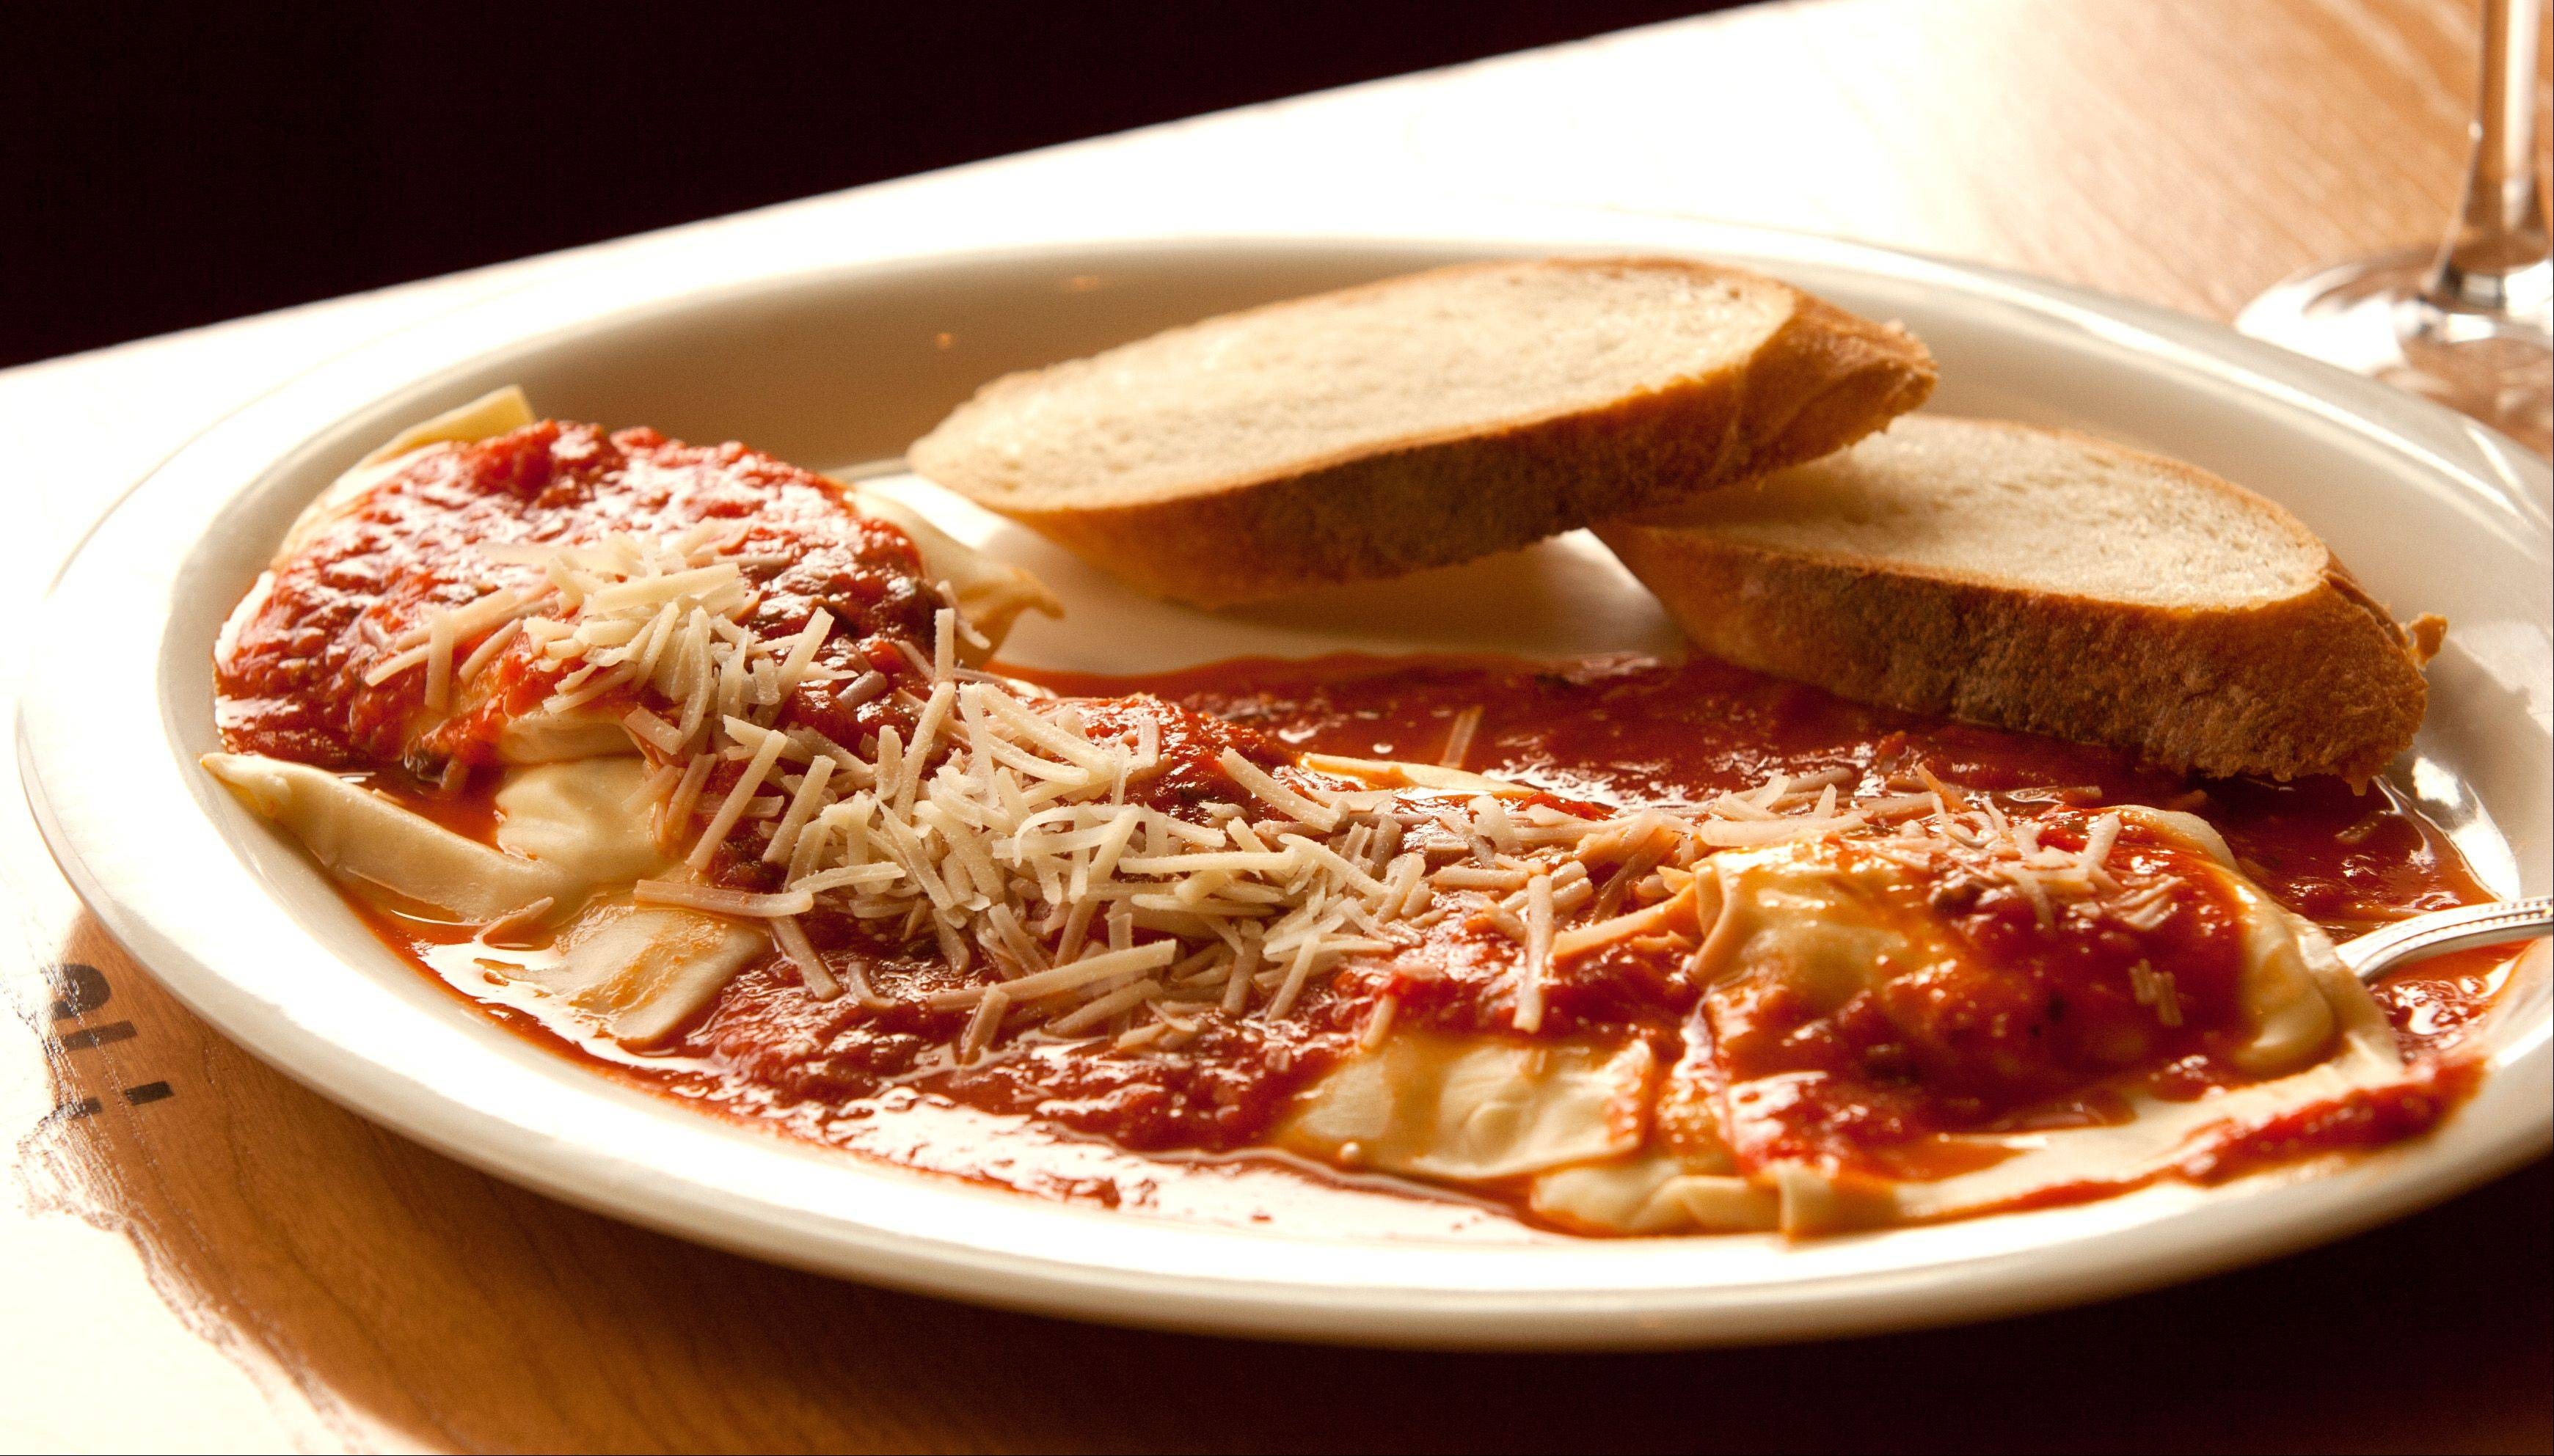 Tender, fresh pasta is the real star at Ravioli Oli in Oak Brook.